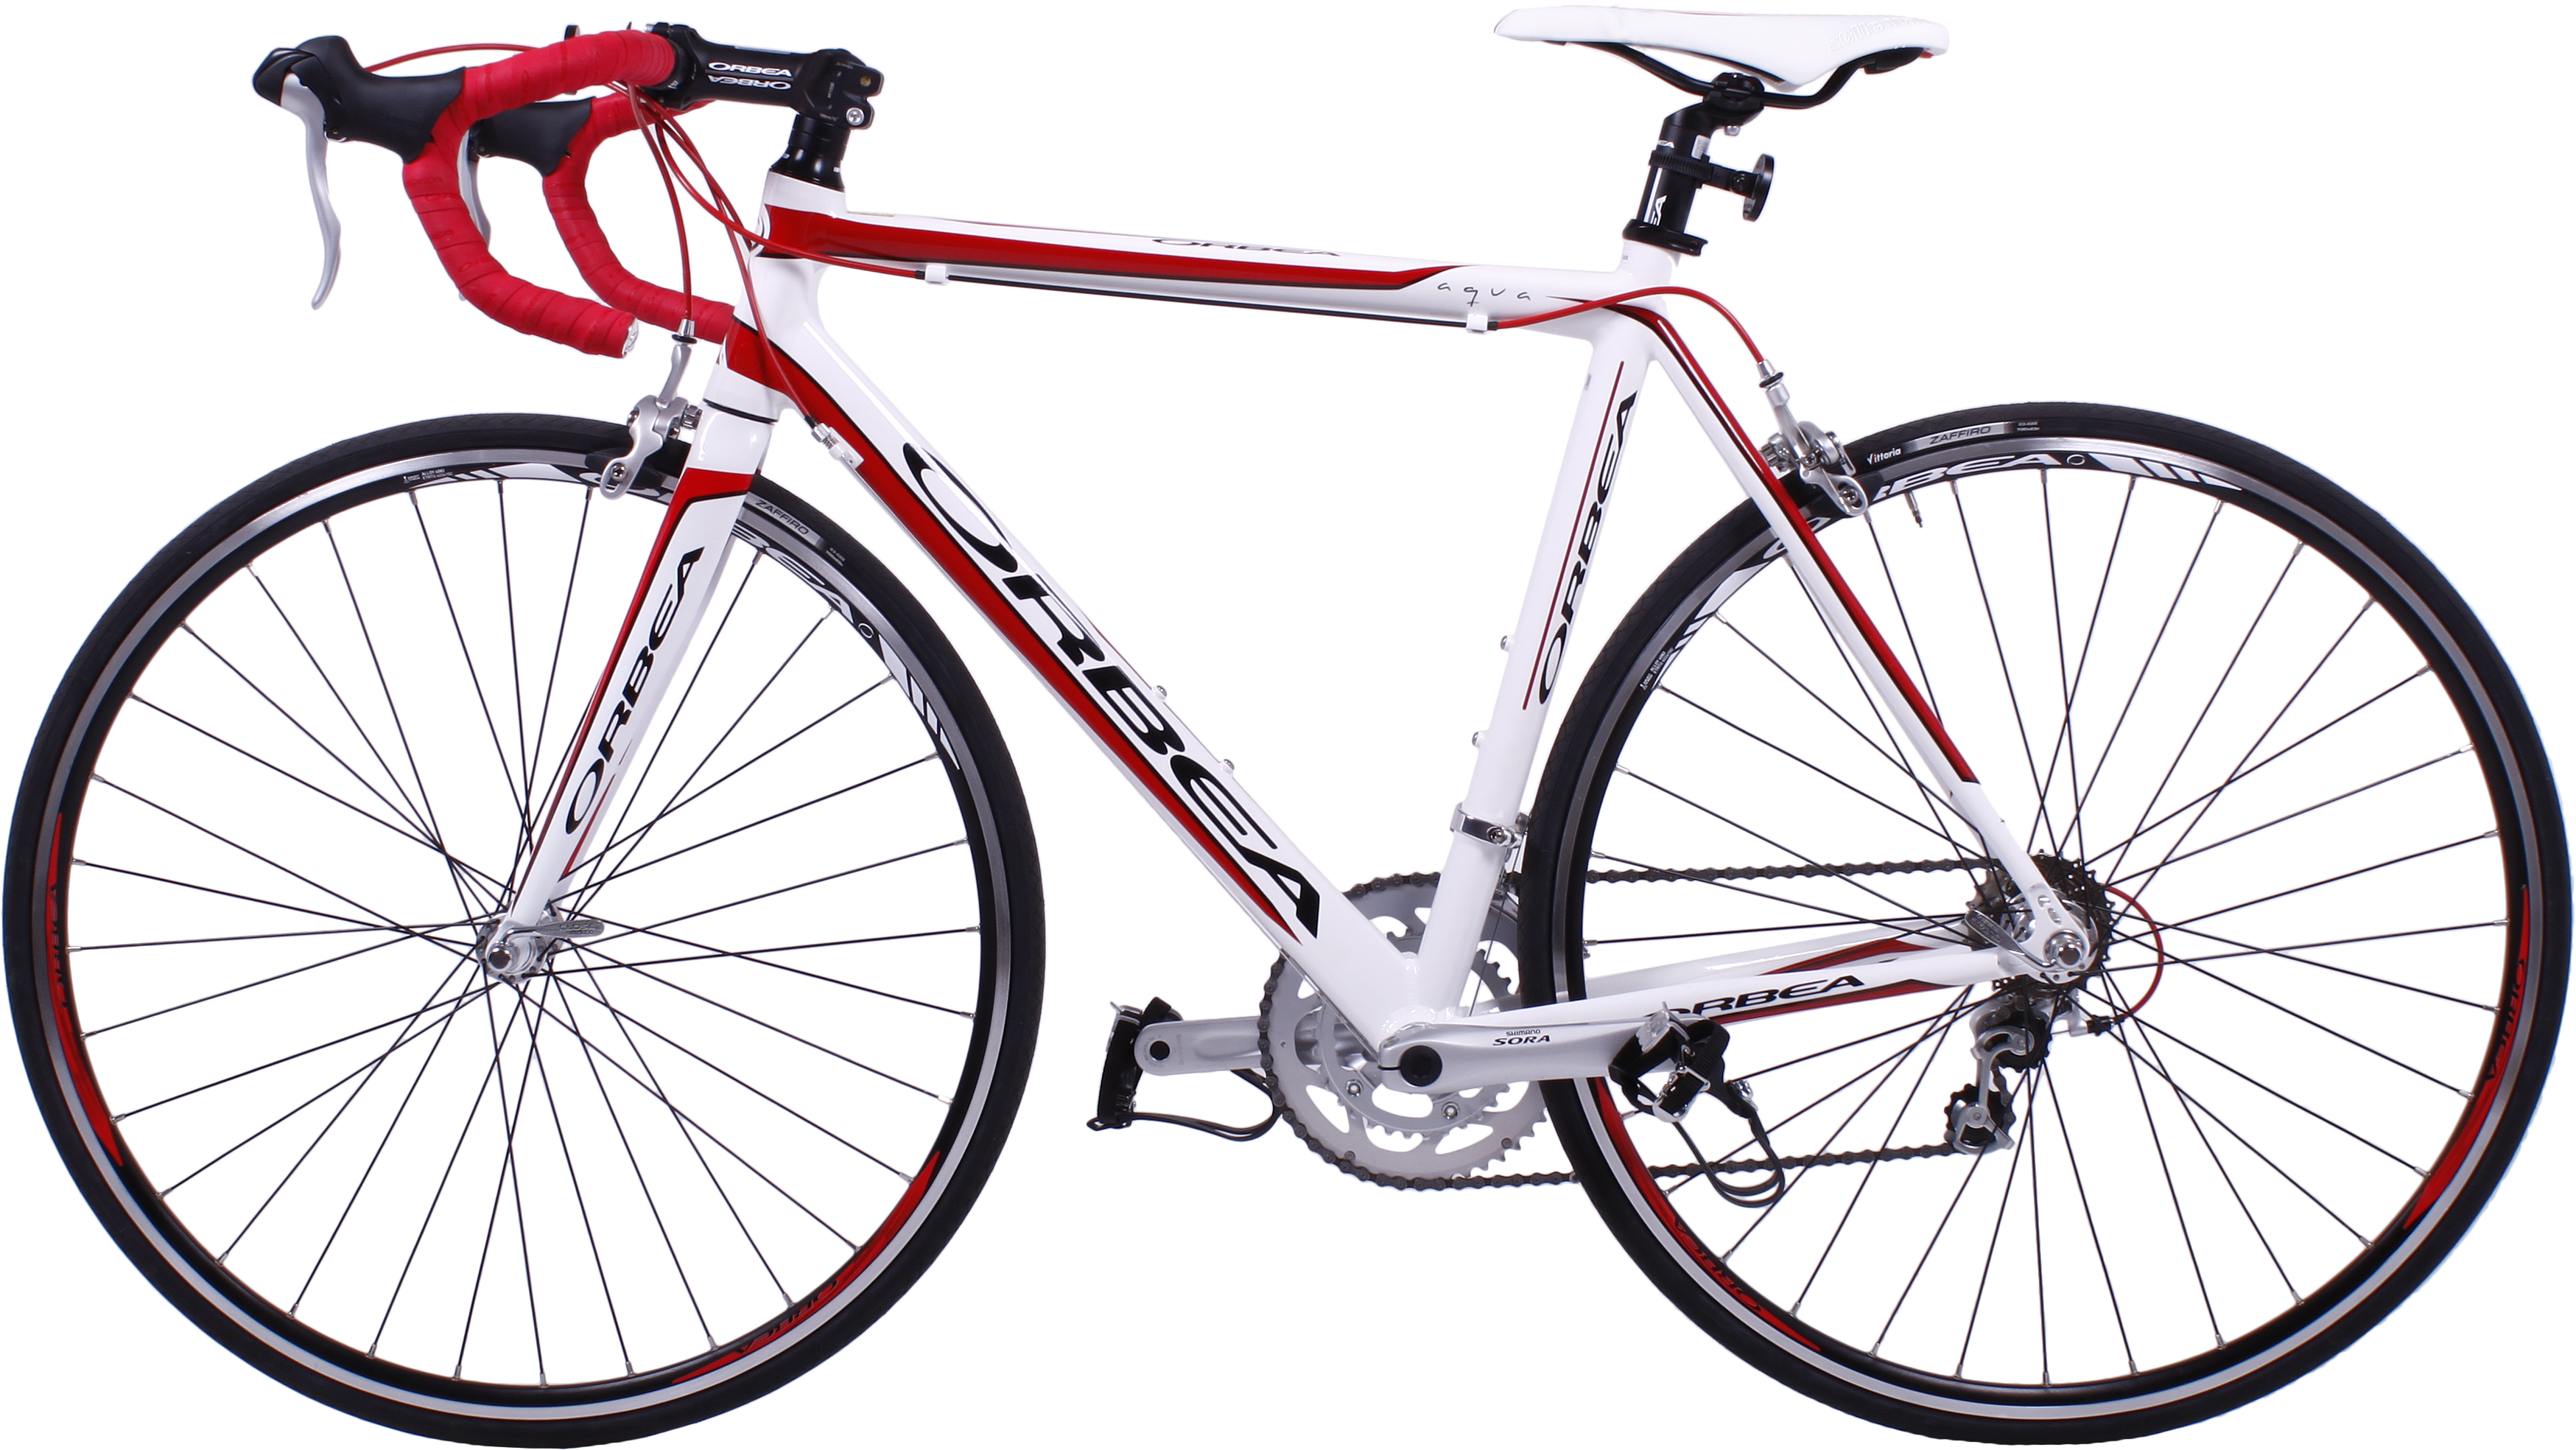 Bicycle PNG Image White And Red image #45190